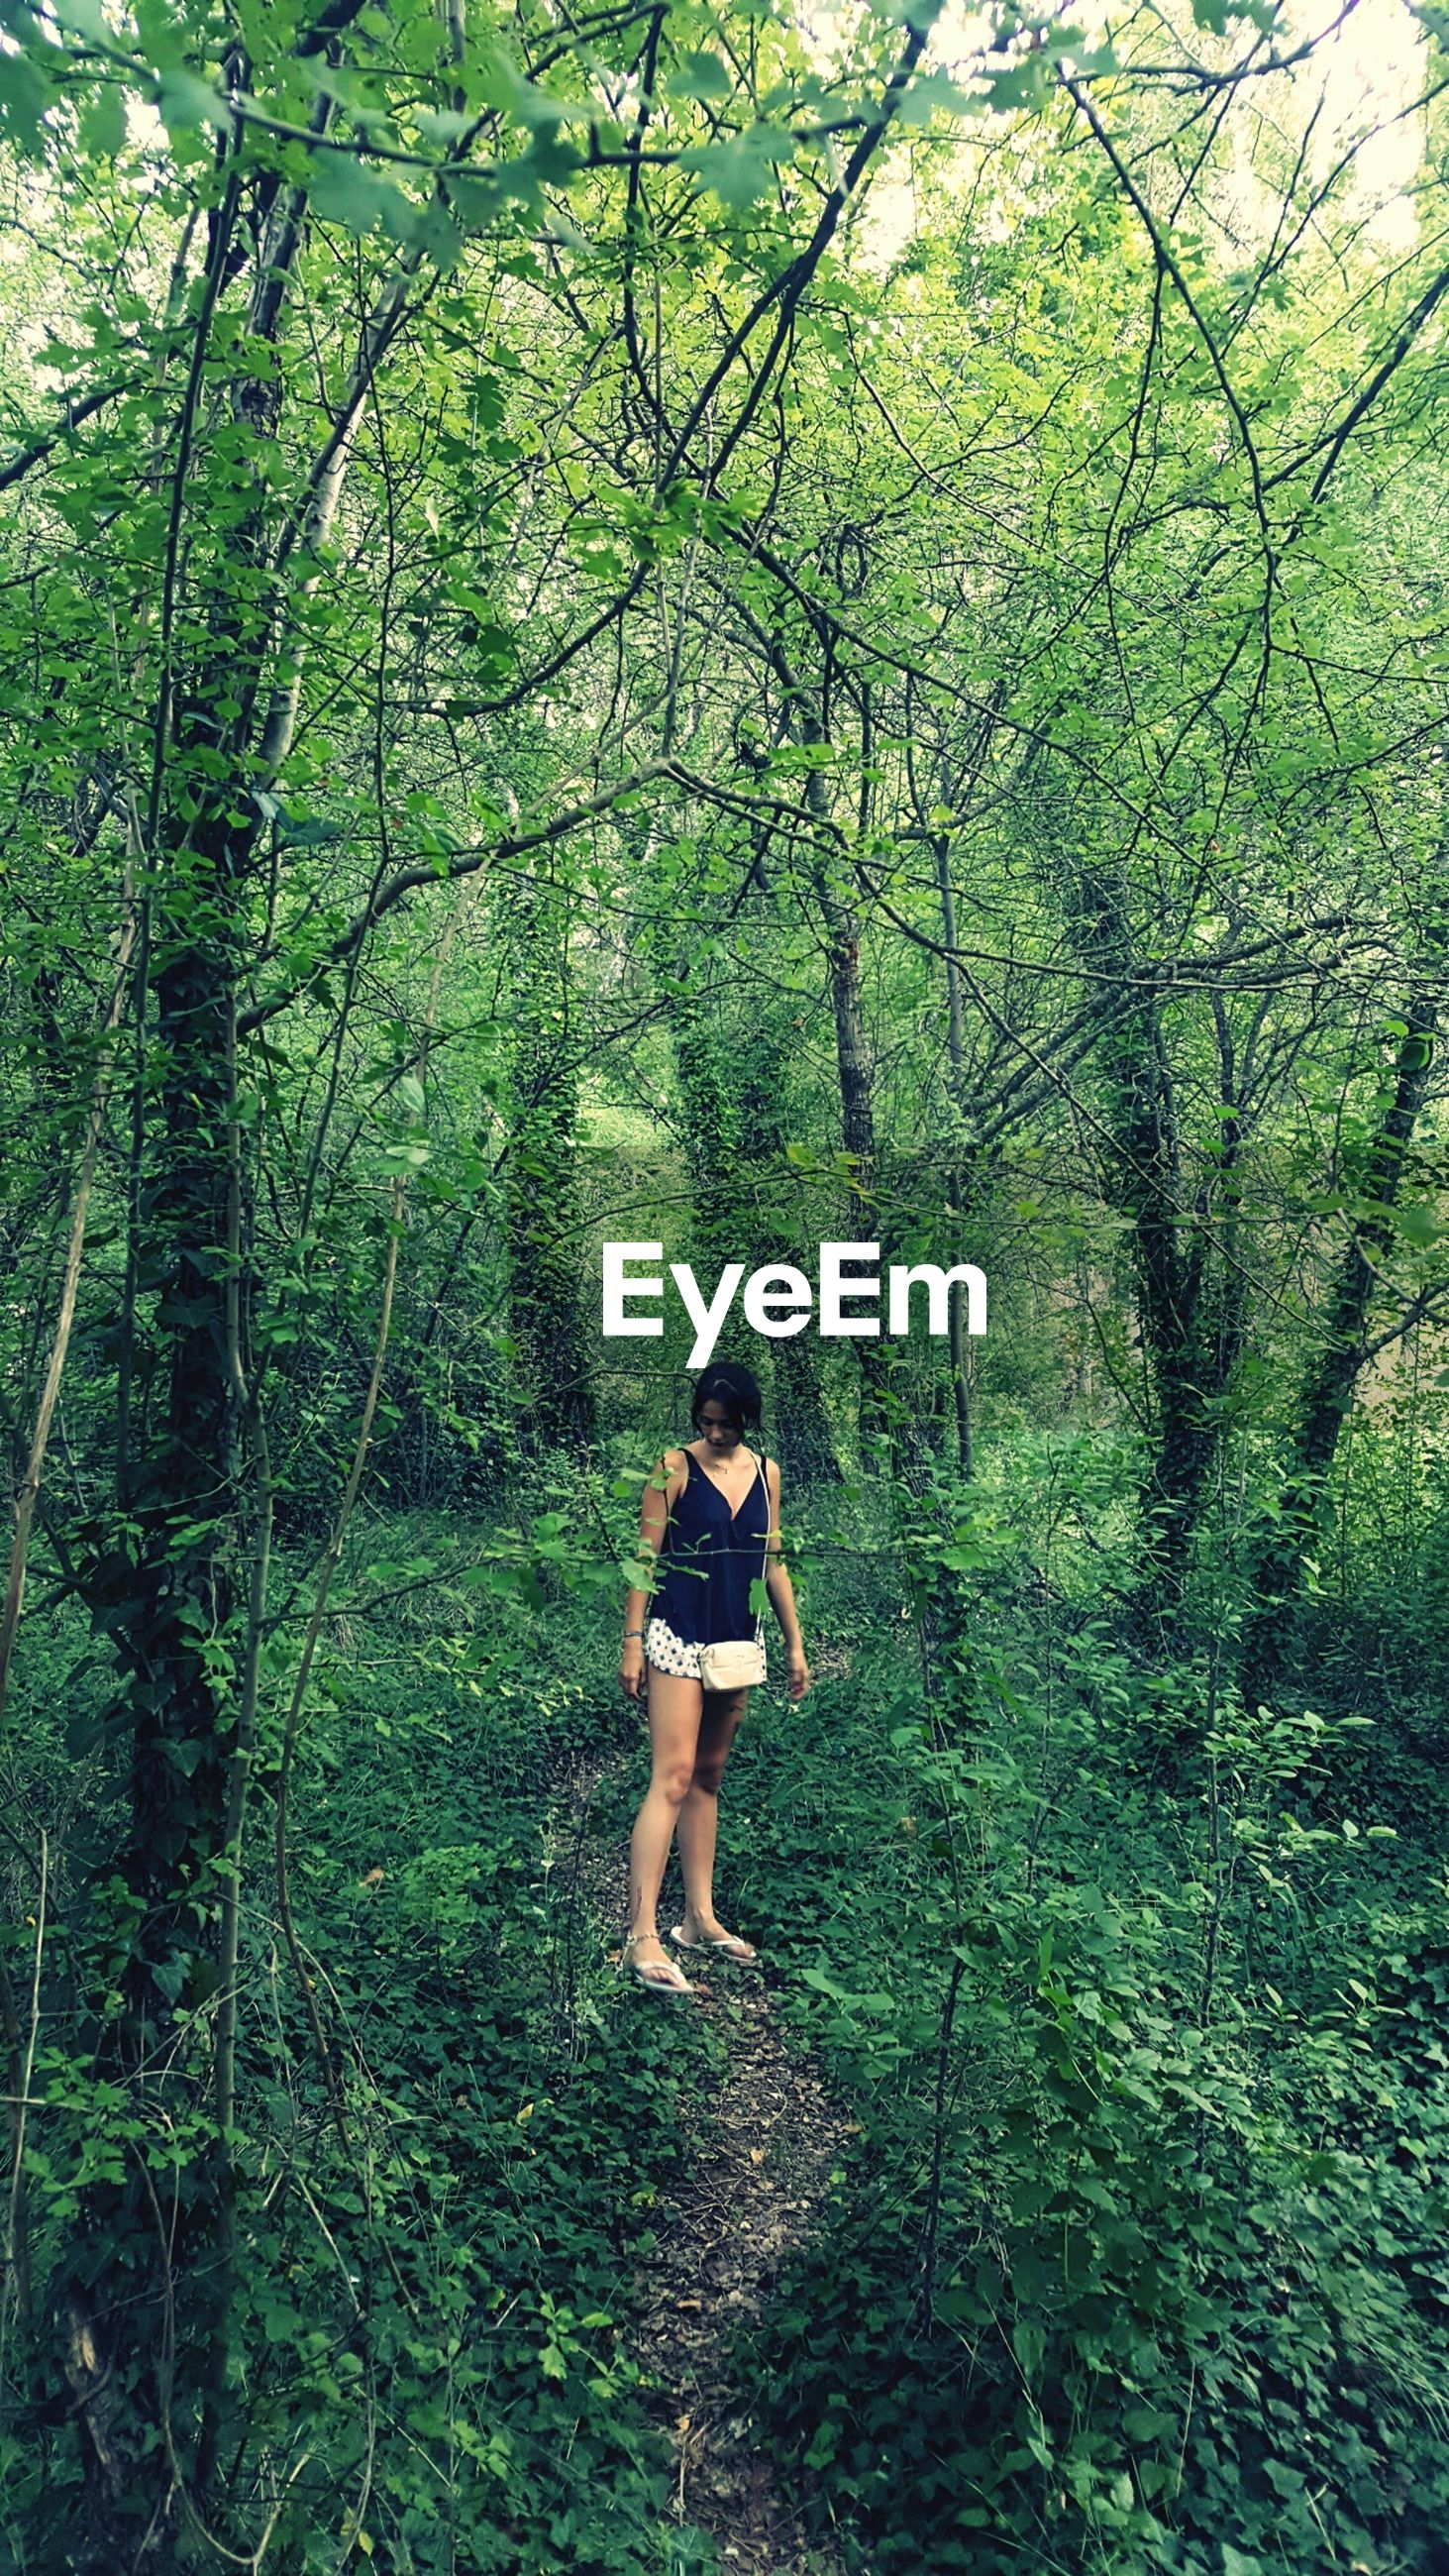 forest, tree, green color, full length, growth, one person, nature, real people, leisure activity, hiking, adventure, lifestyles, day, walking, healthy lifestyle, outdoors, standing, boys, branch, beauty in nature, young adult, young women, people